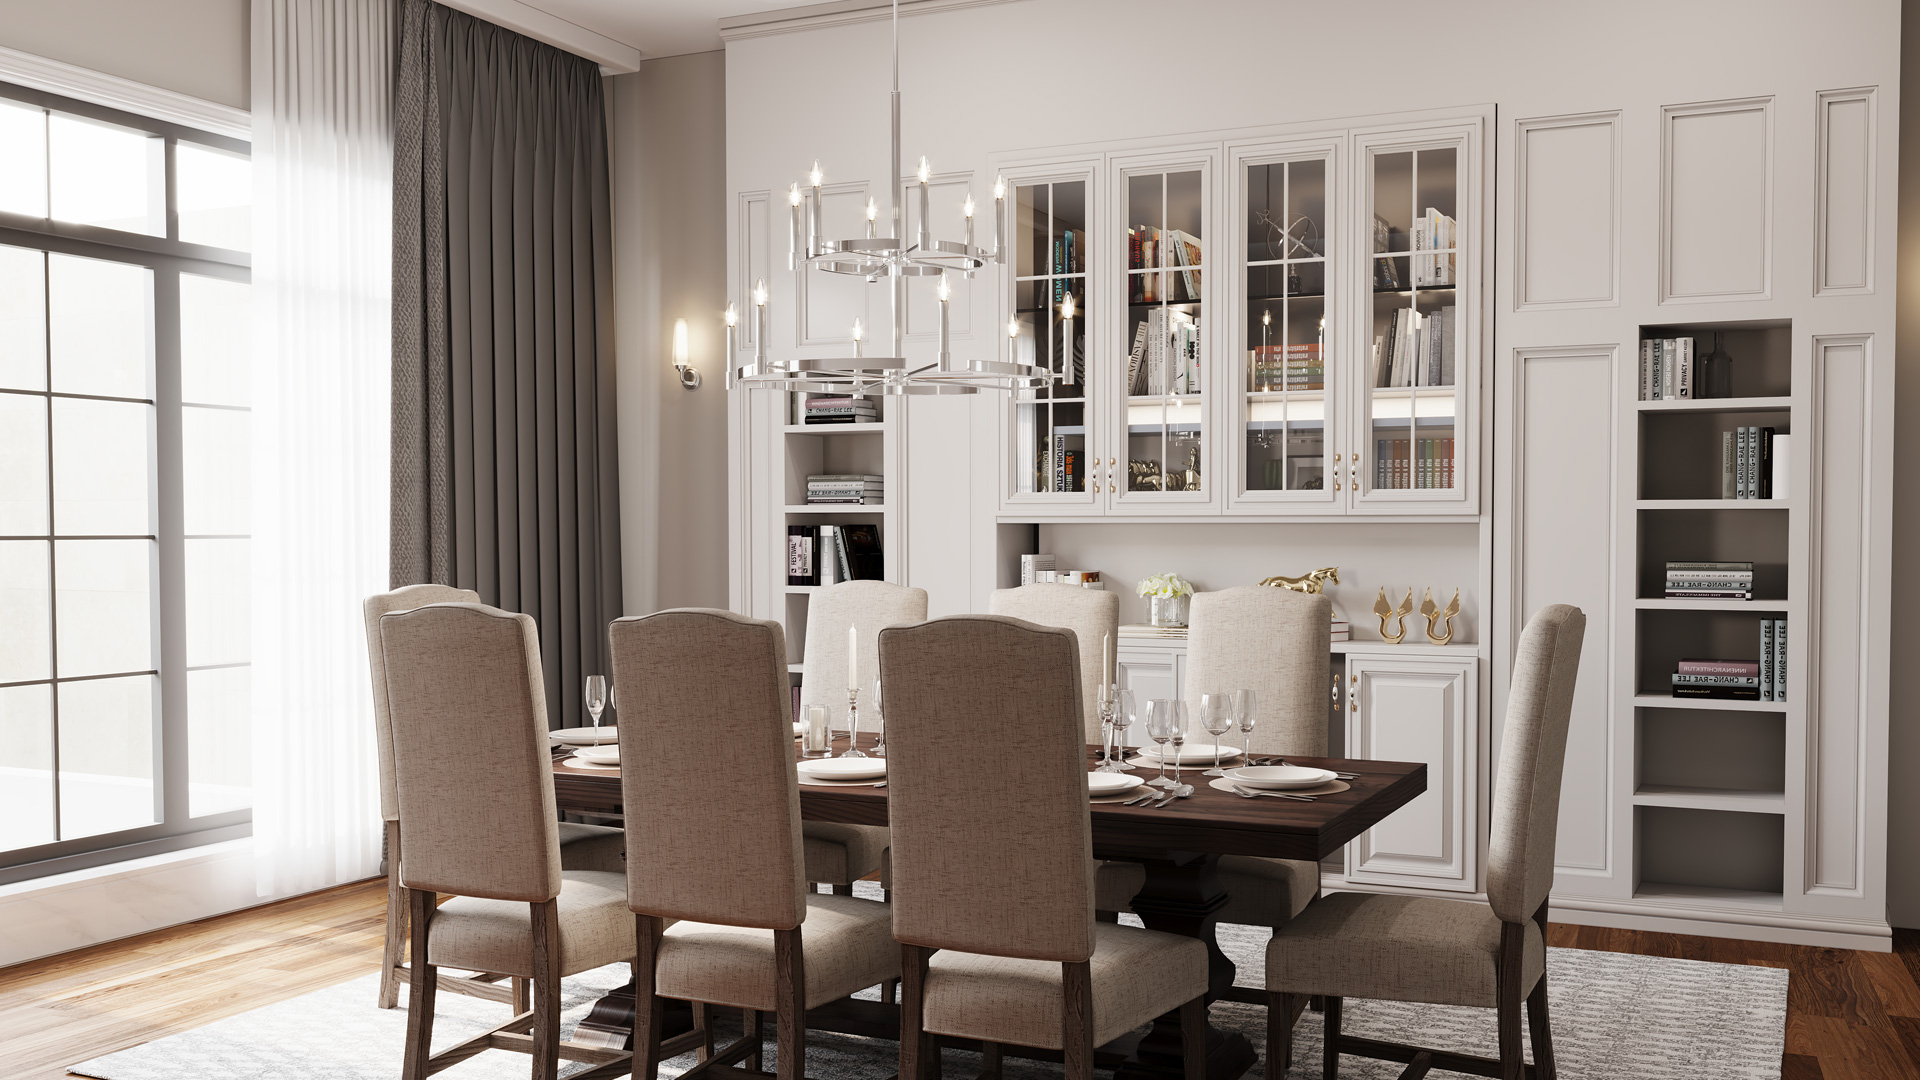 Day time dining room image featuring Tolani chandelier 52428PN